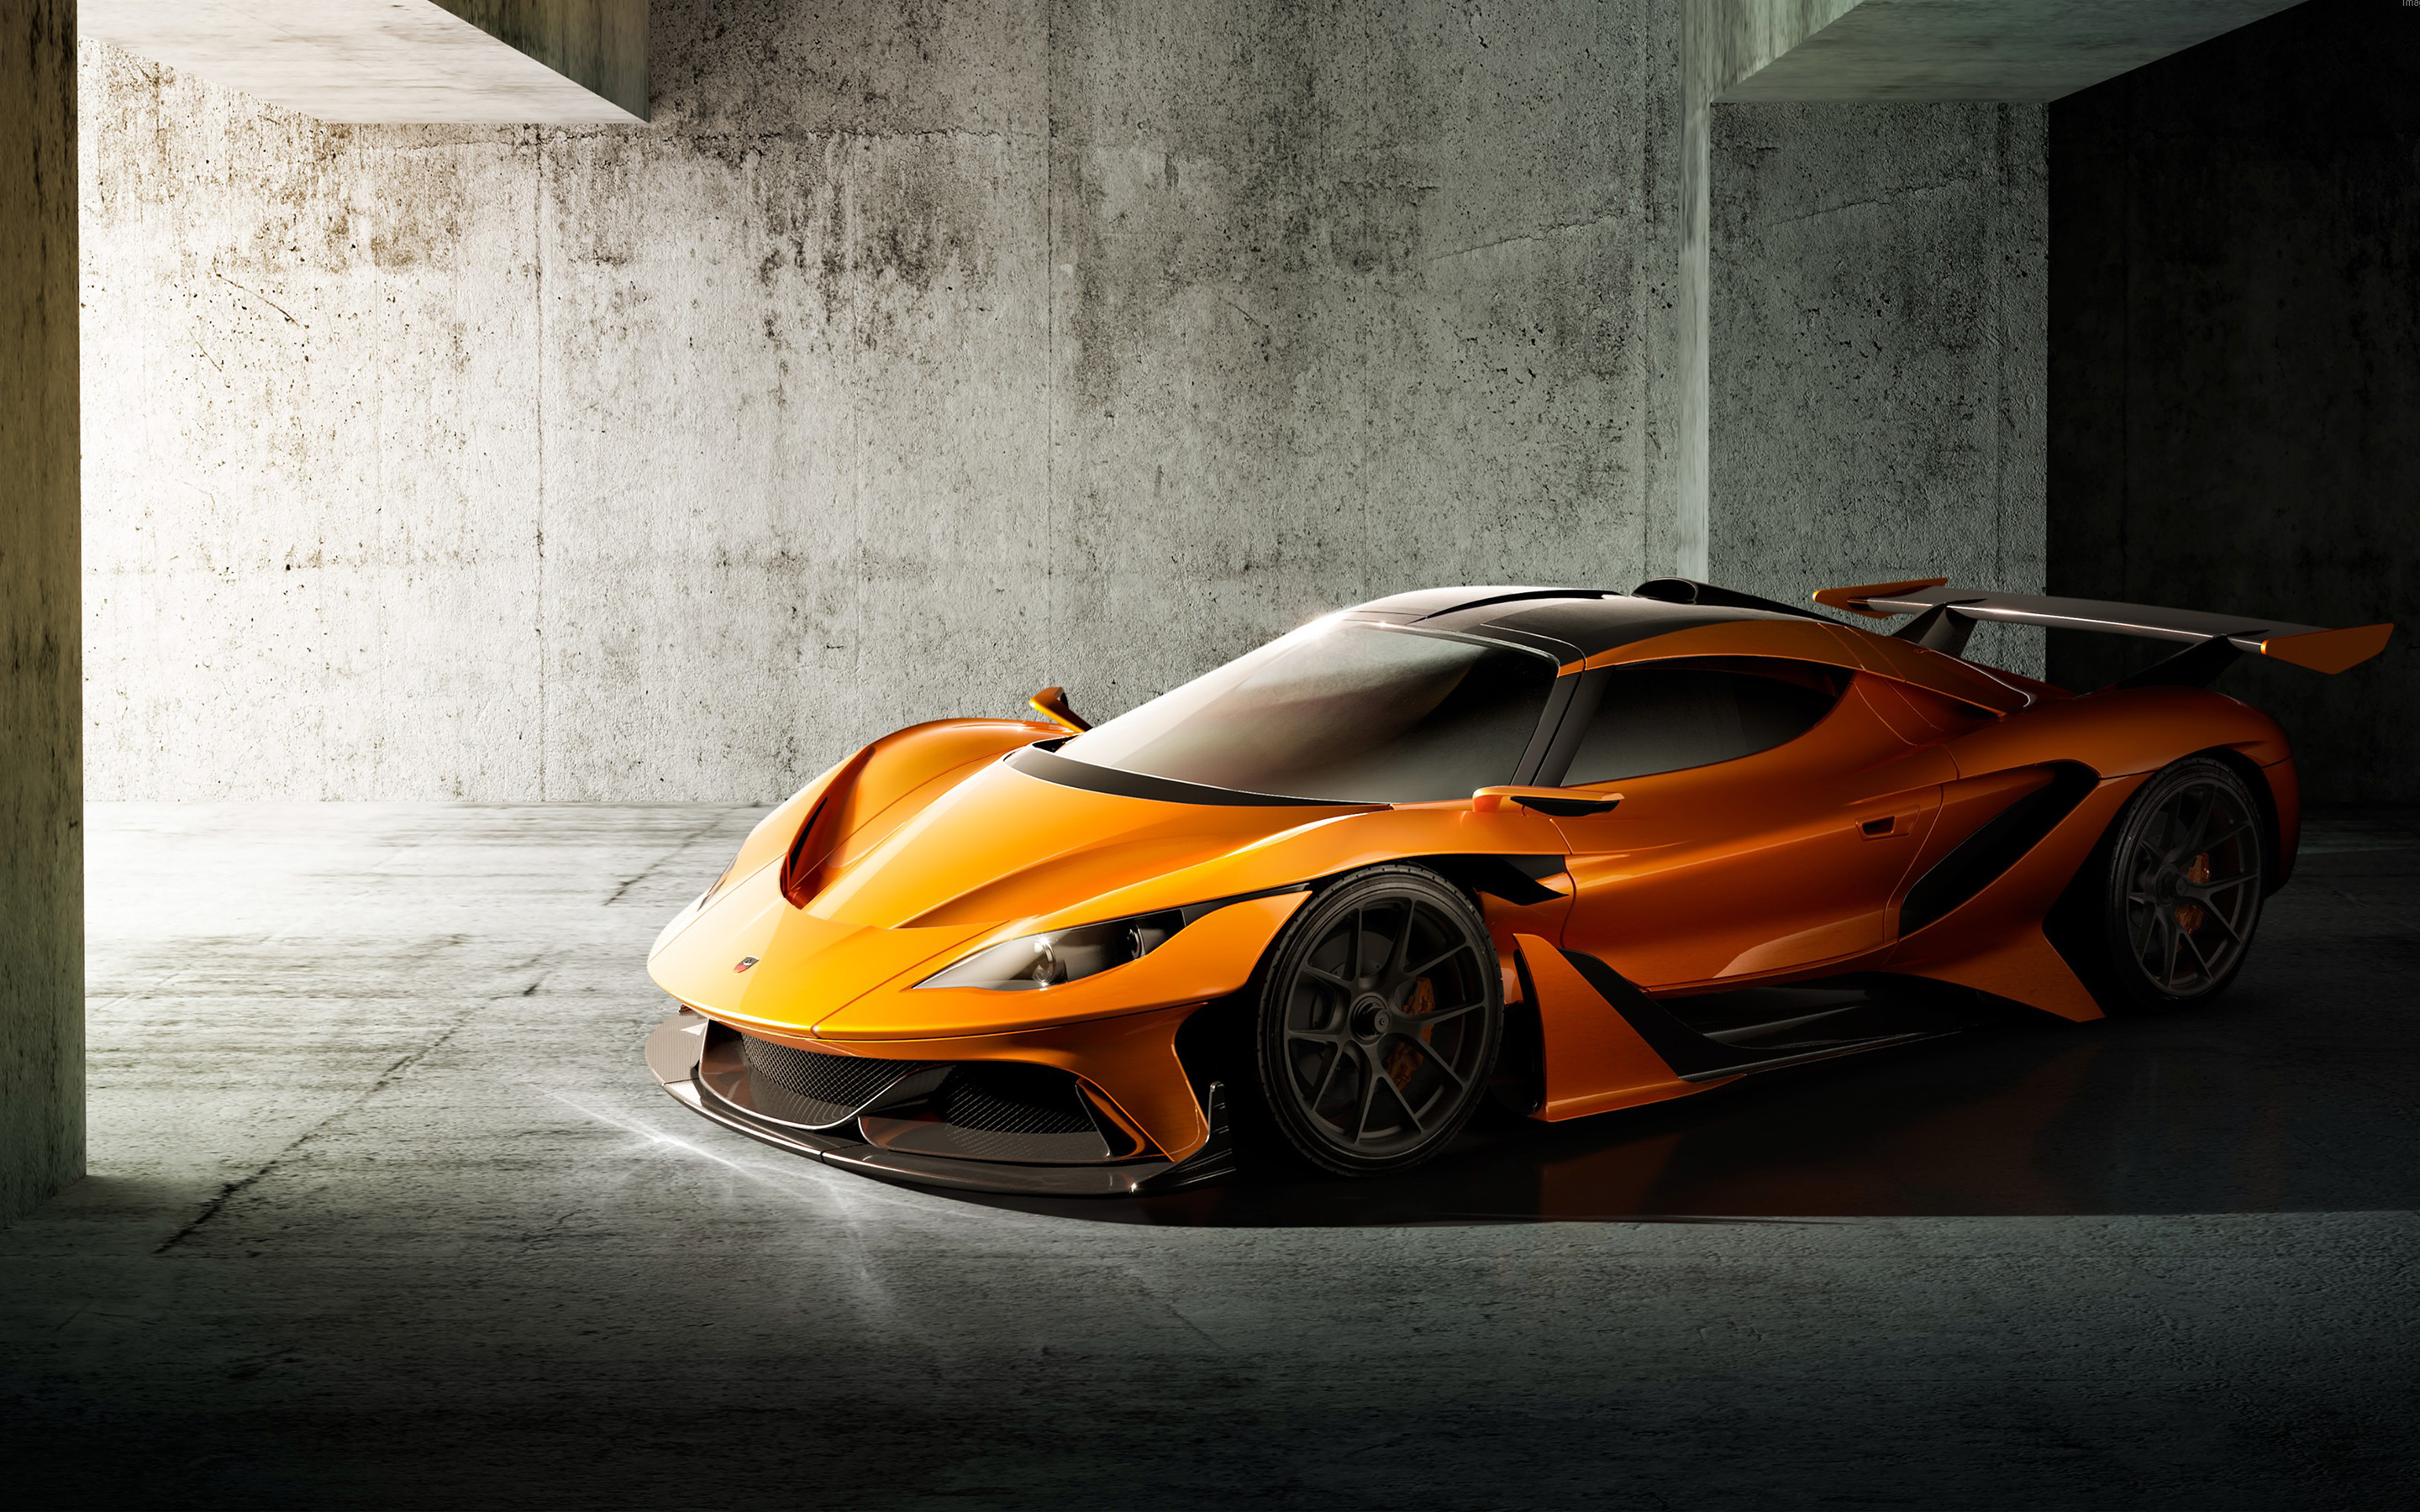 Apollo arrow geneva auto show 2016 4k wallpaper hd car - Wallpaper hd 4k car ...